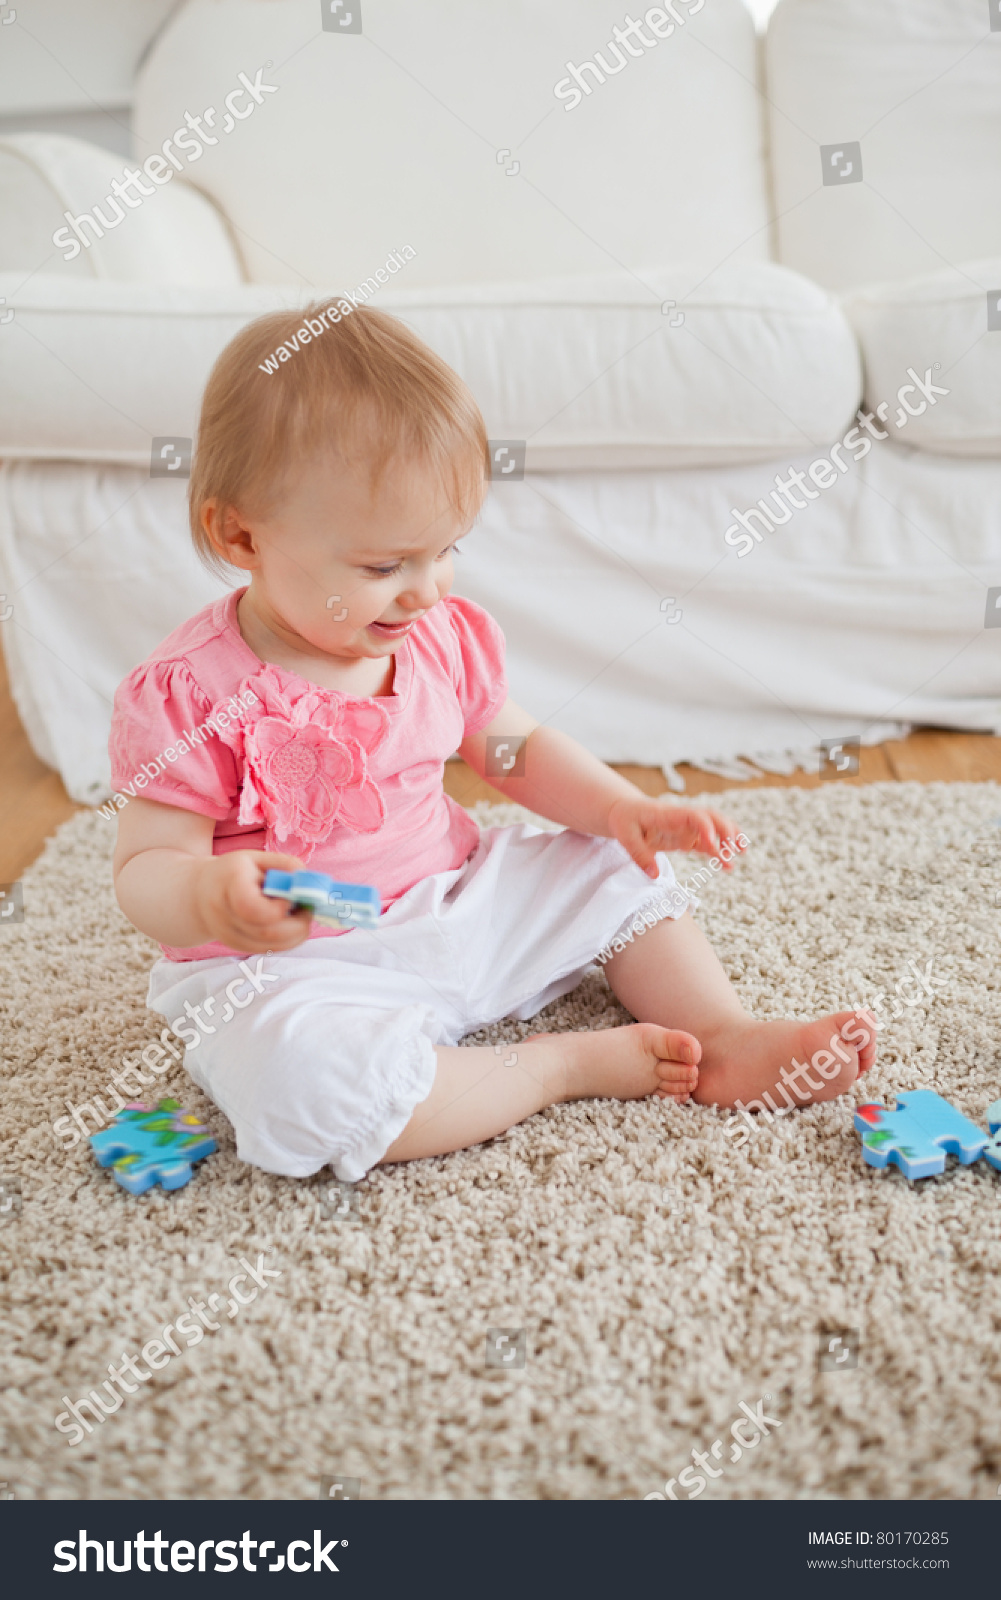 Baby Playing With Puzzle Pieces While Sitting On A Carpet In The Living Room Stock Photo